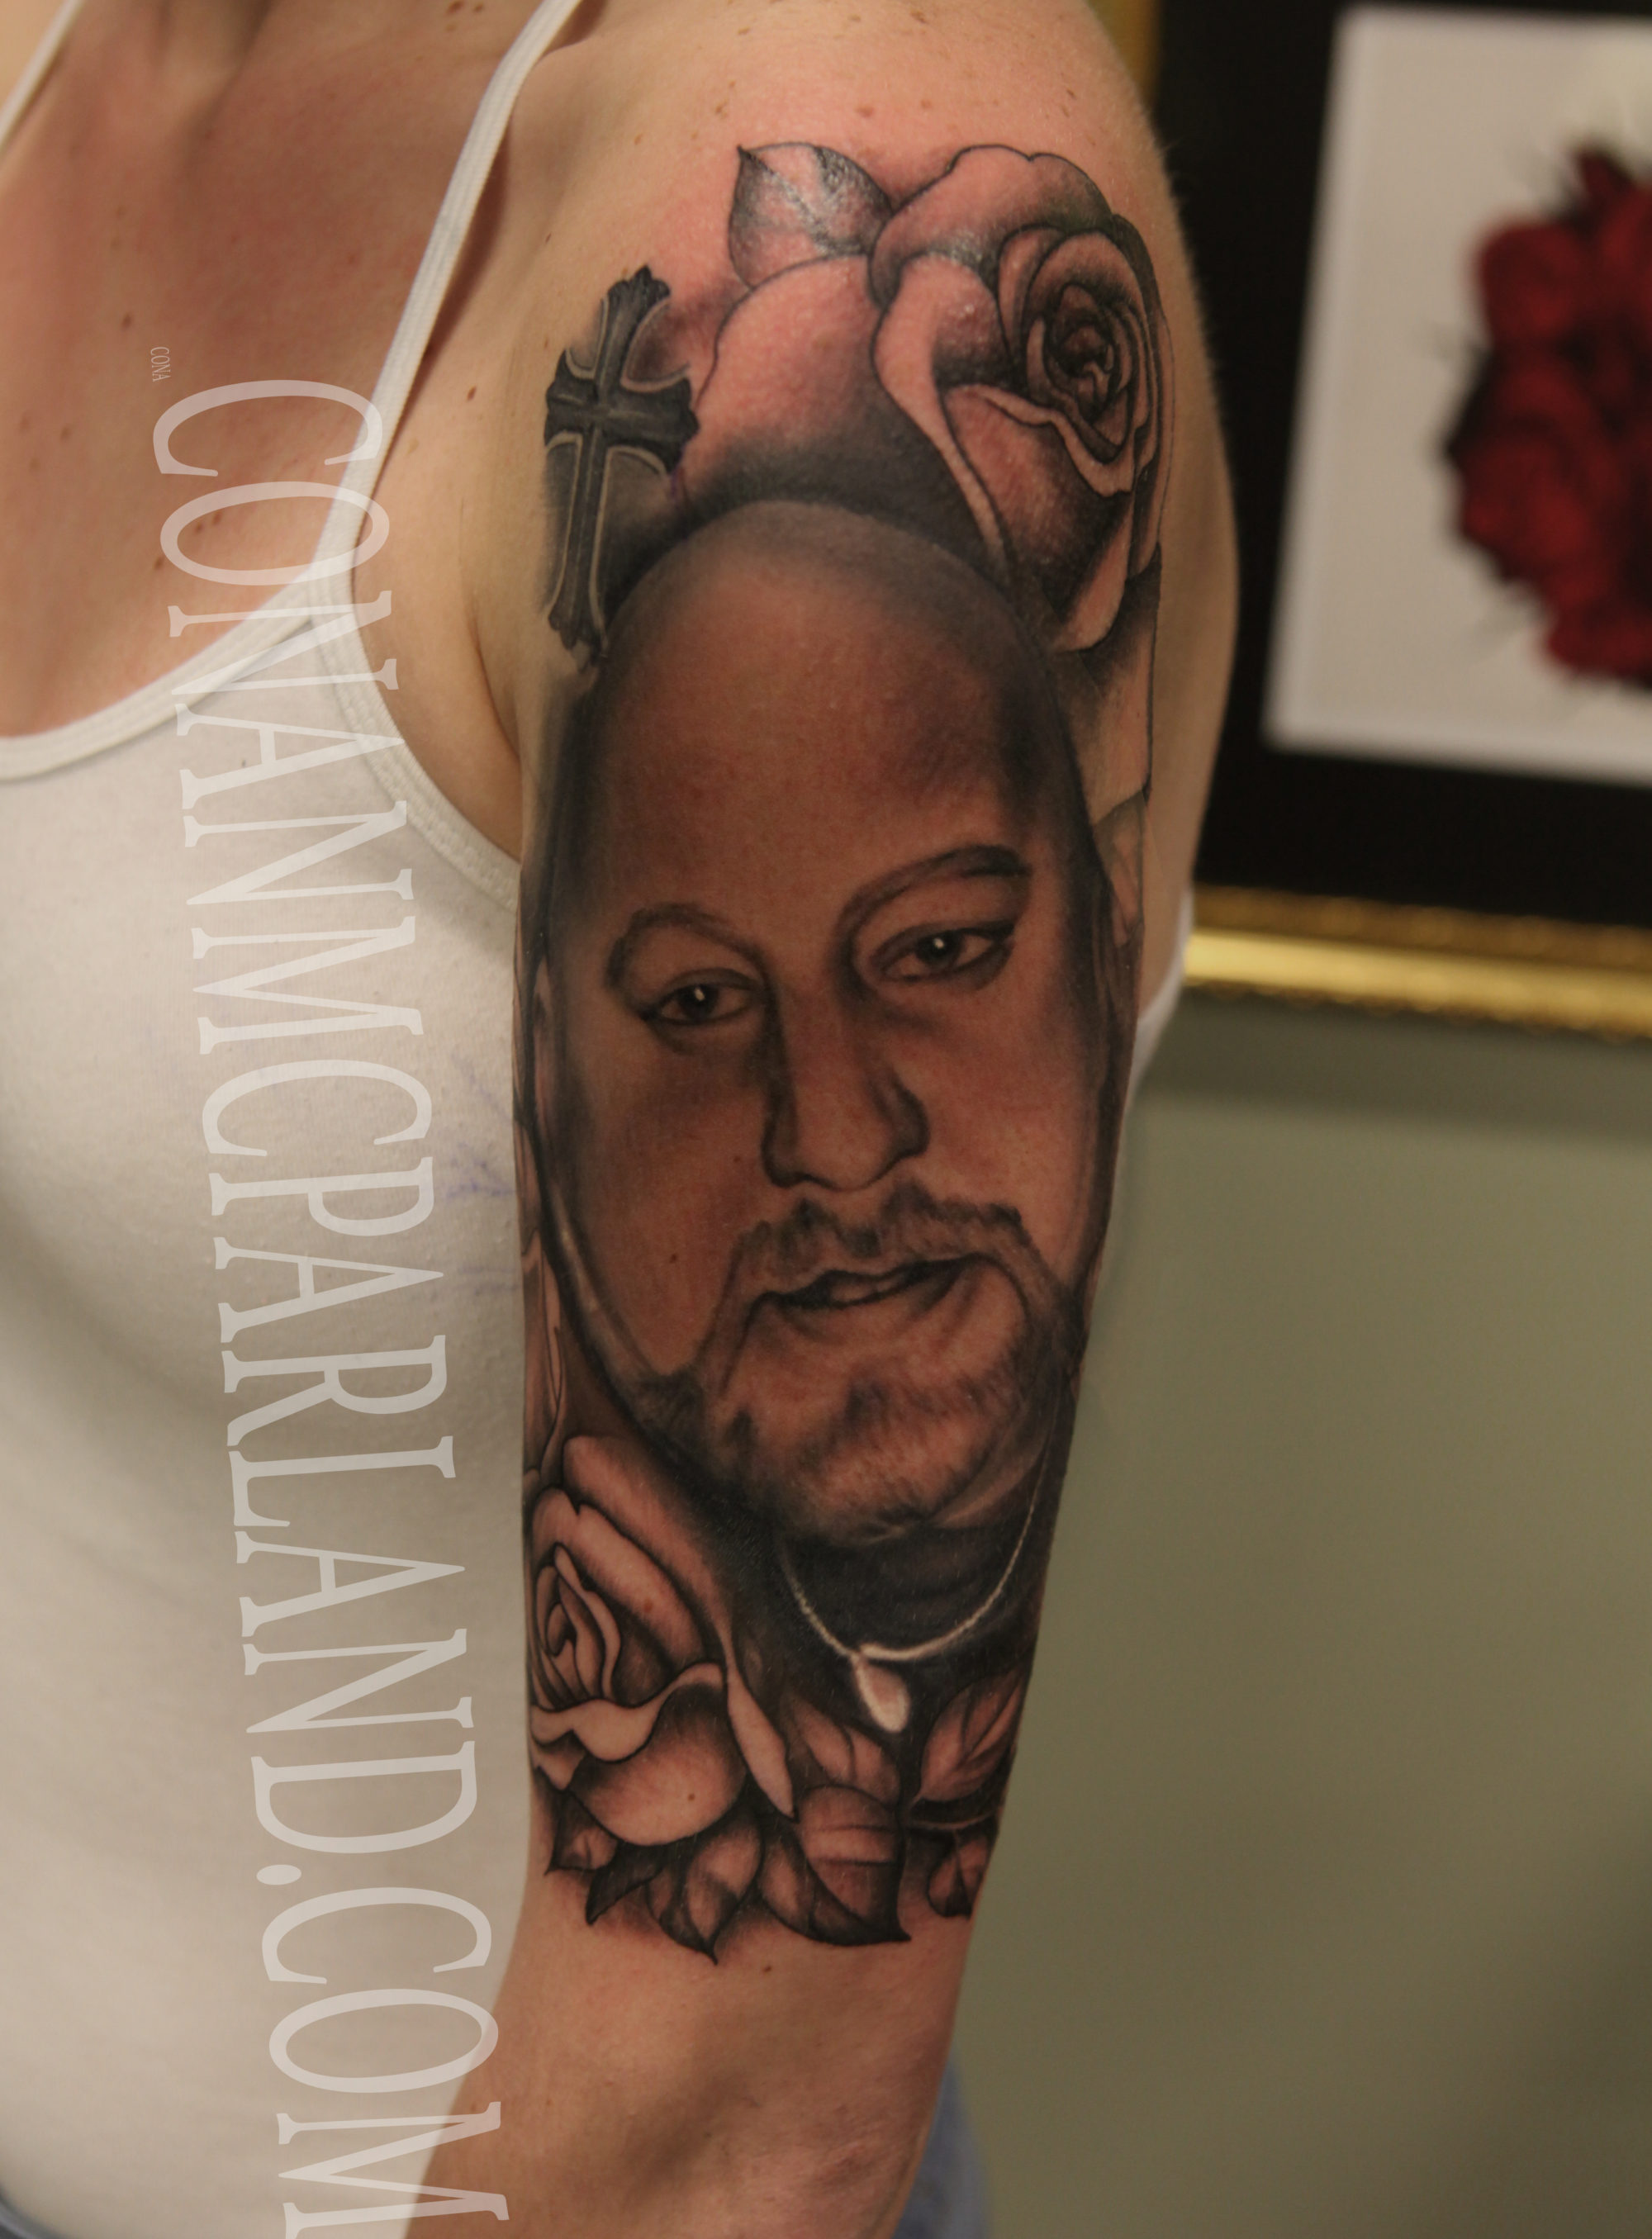 Charlotte nc tattoo artist conan mcparland for Tattoo parlors in charlotte nc